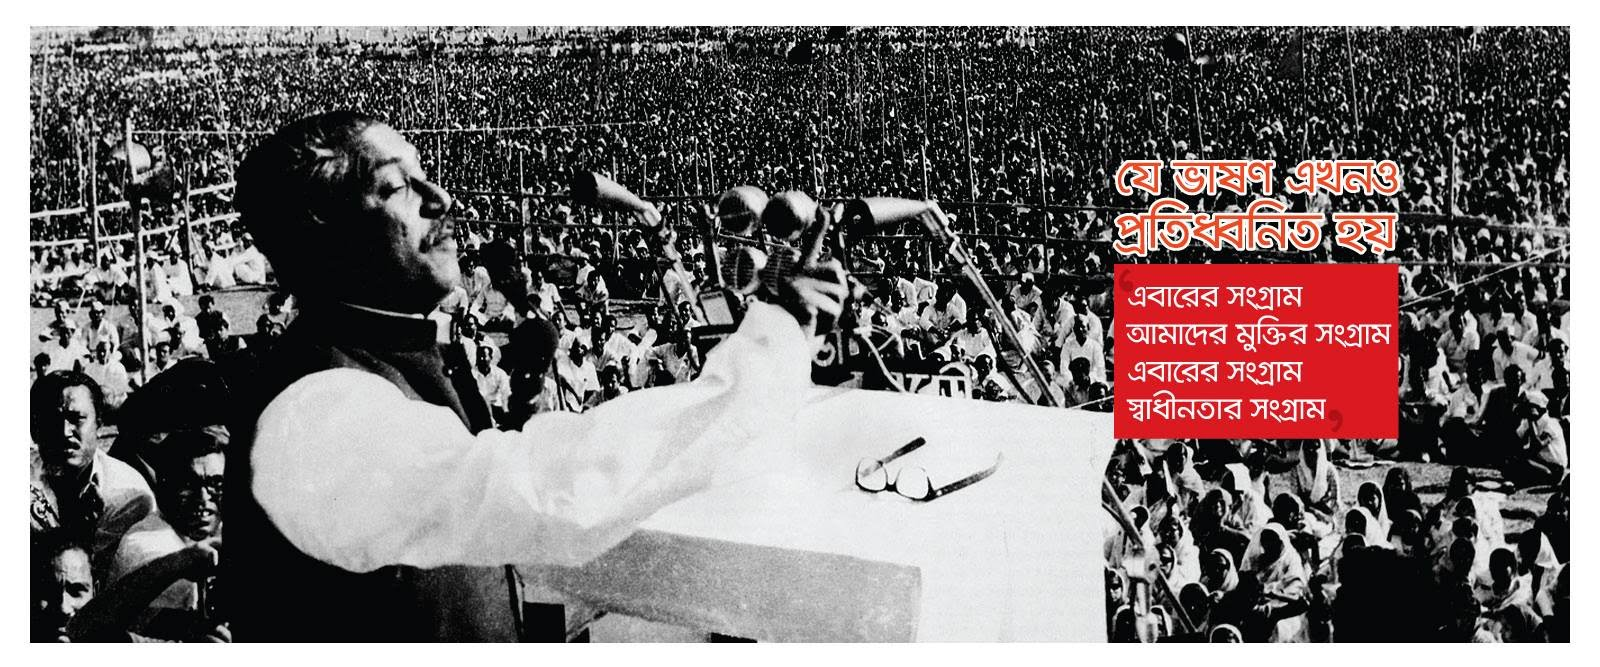 Bangabandhu Sheikh Mujibur Rahman, Father of the Nation, during his historic 7th March Address to millions of Bengalees, setting the course of our independence in 1971.